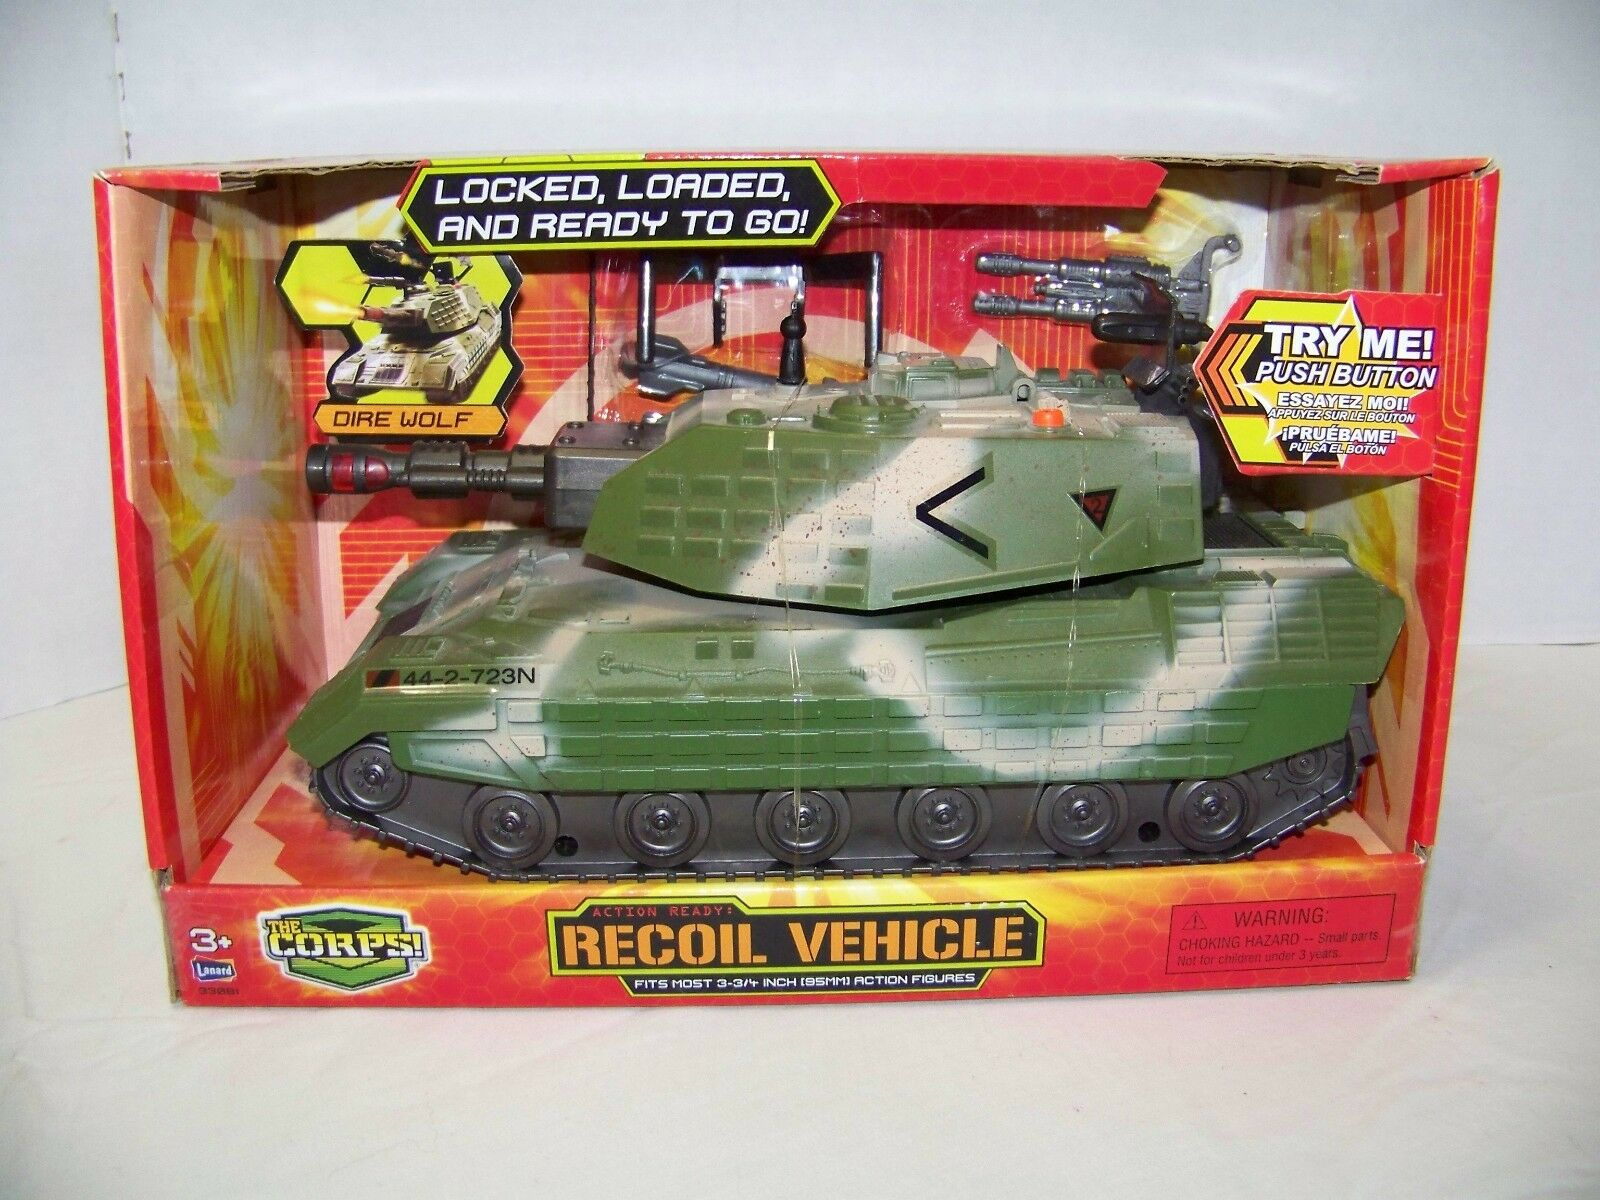 NEW LANARD TOYS THE CORPS DIRE WOLF TANK RECOIL VEHICLE ELECTRONIC 2011